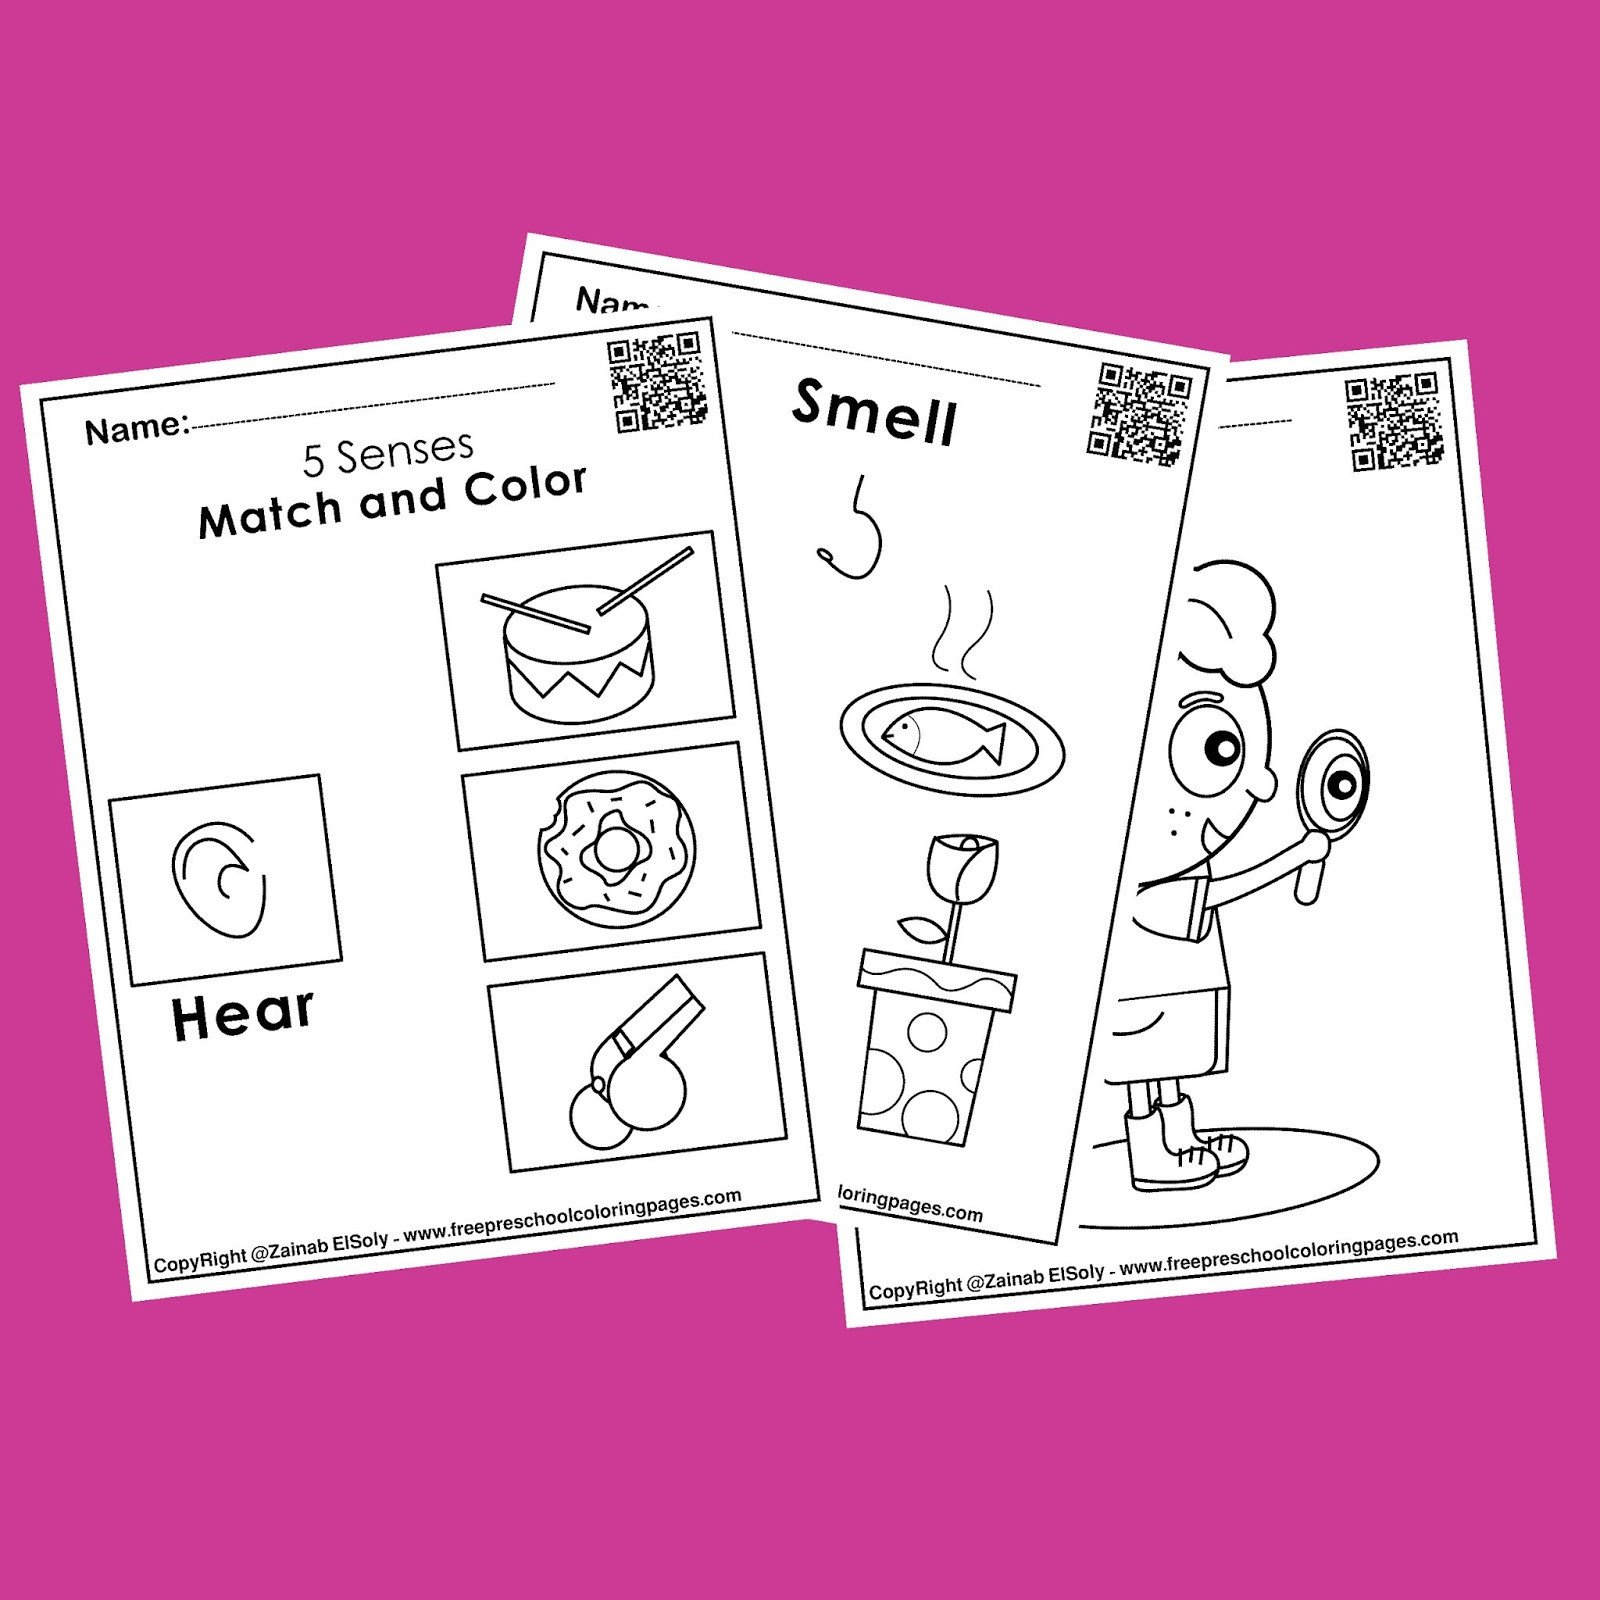 5 Senses Worksheet for Kindergarten 5 Senses Free Worksheets Activities for Kids